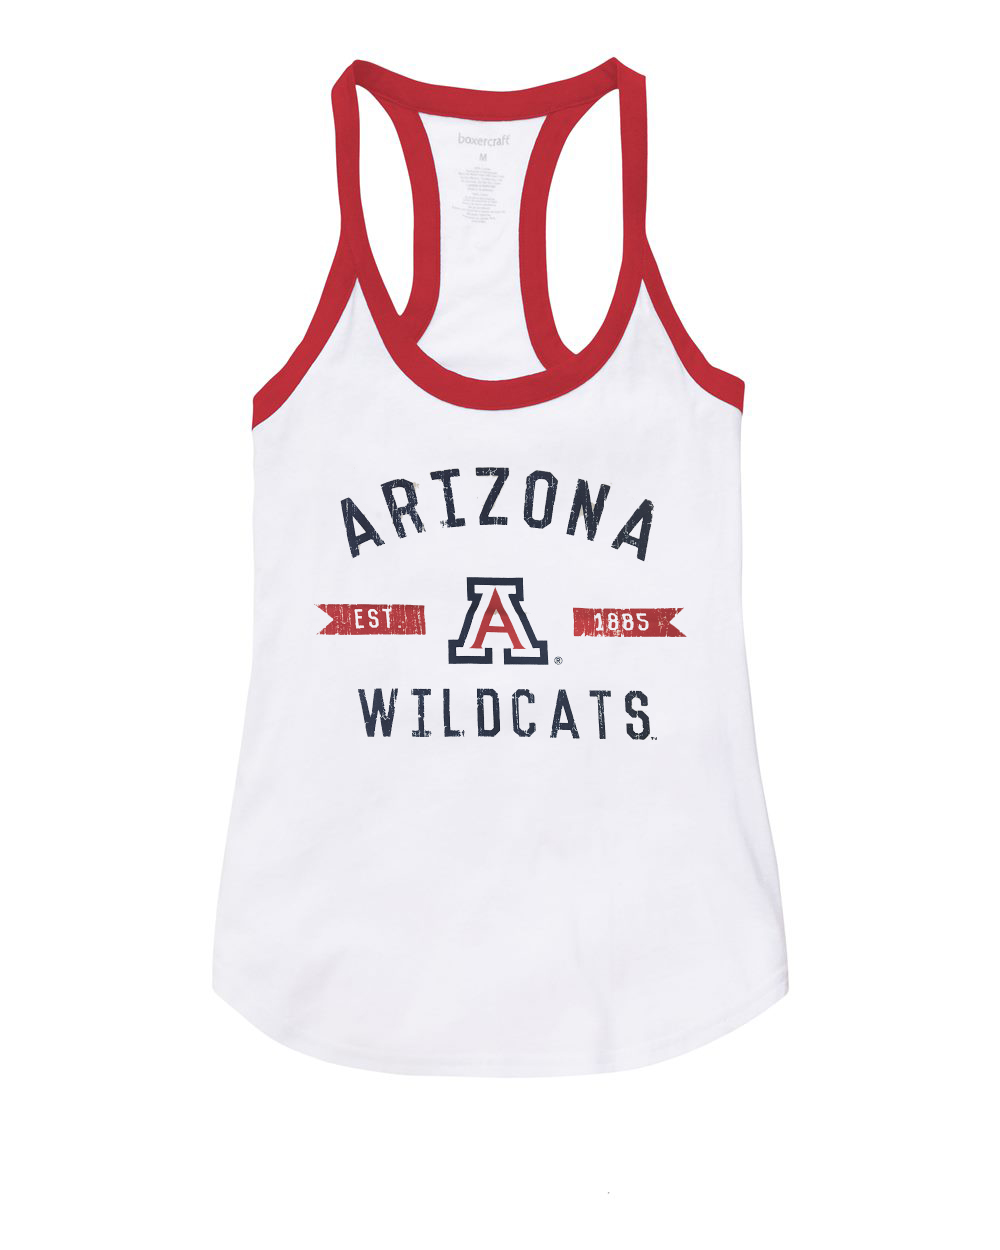 Image For Boxercraft: Arizona Est 1885 Wildcats Women's Ringer Tank